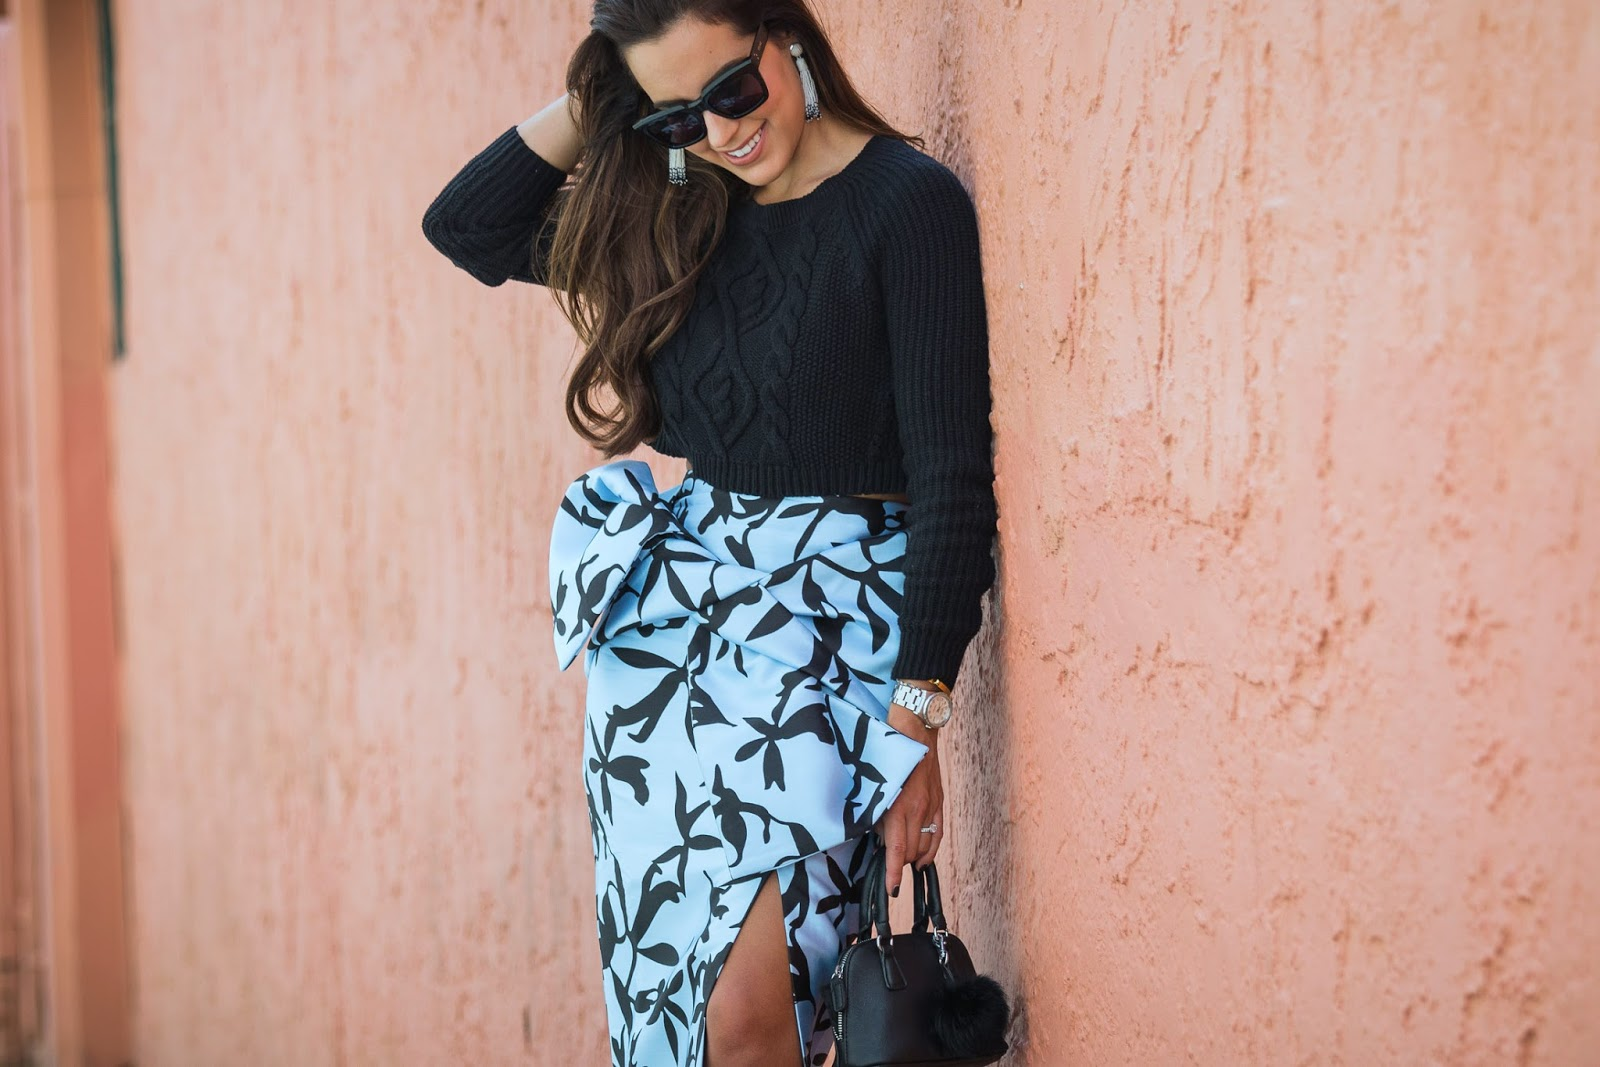 cmeo-little-love-floral-cutout-skirt-fashion-blogger